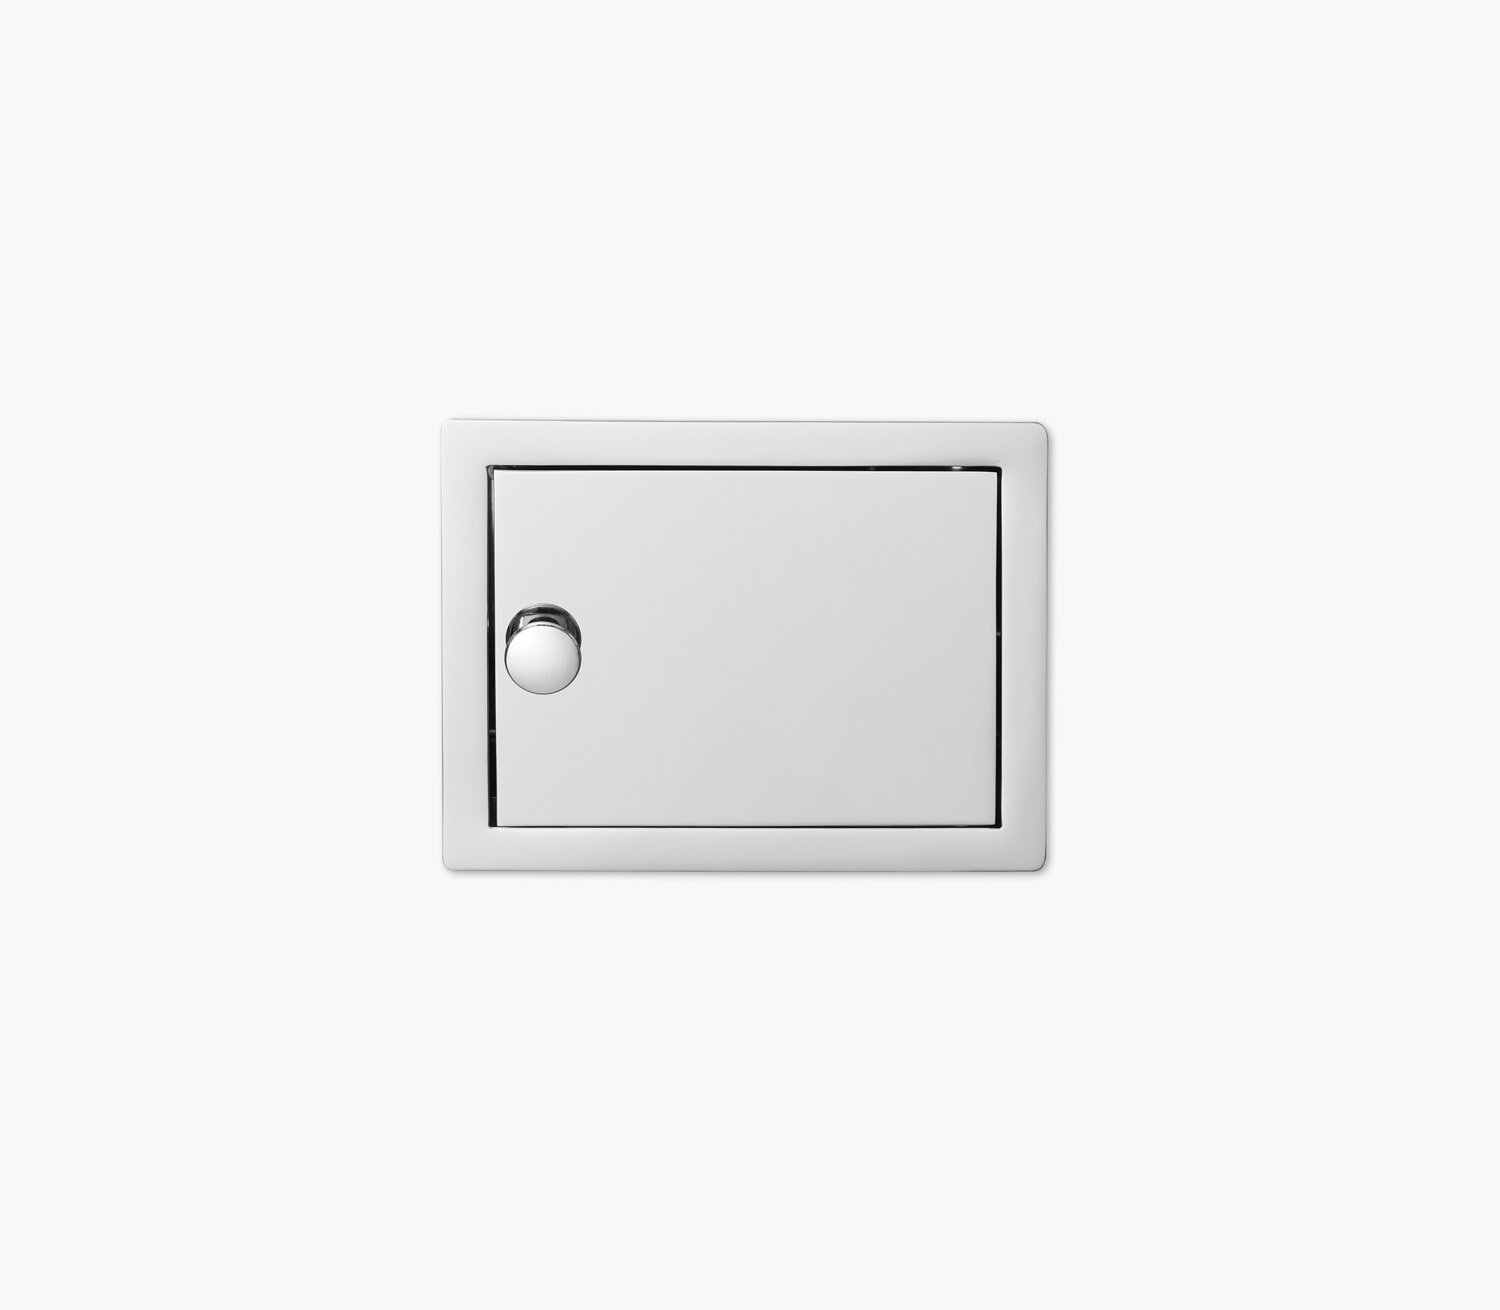 Wall Recessed Toilet Paper Holder II Product Image 4